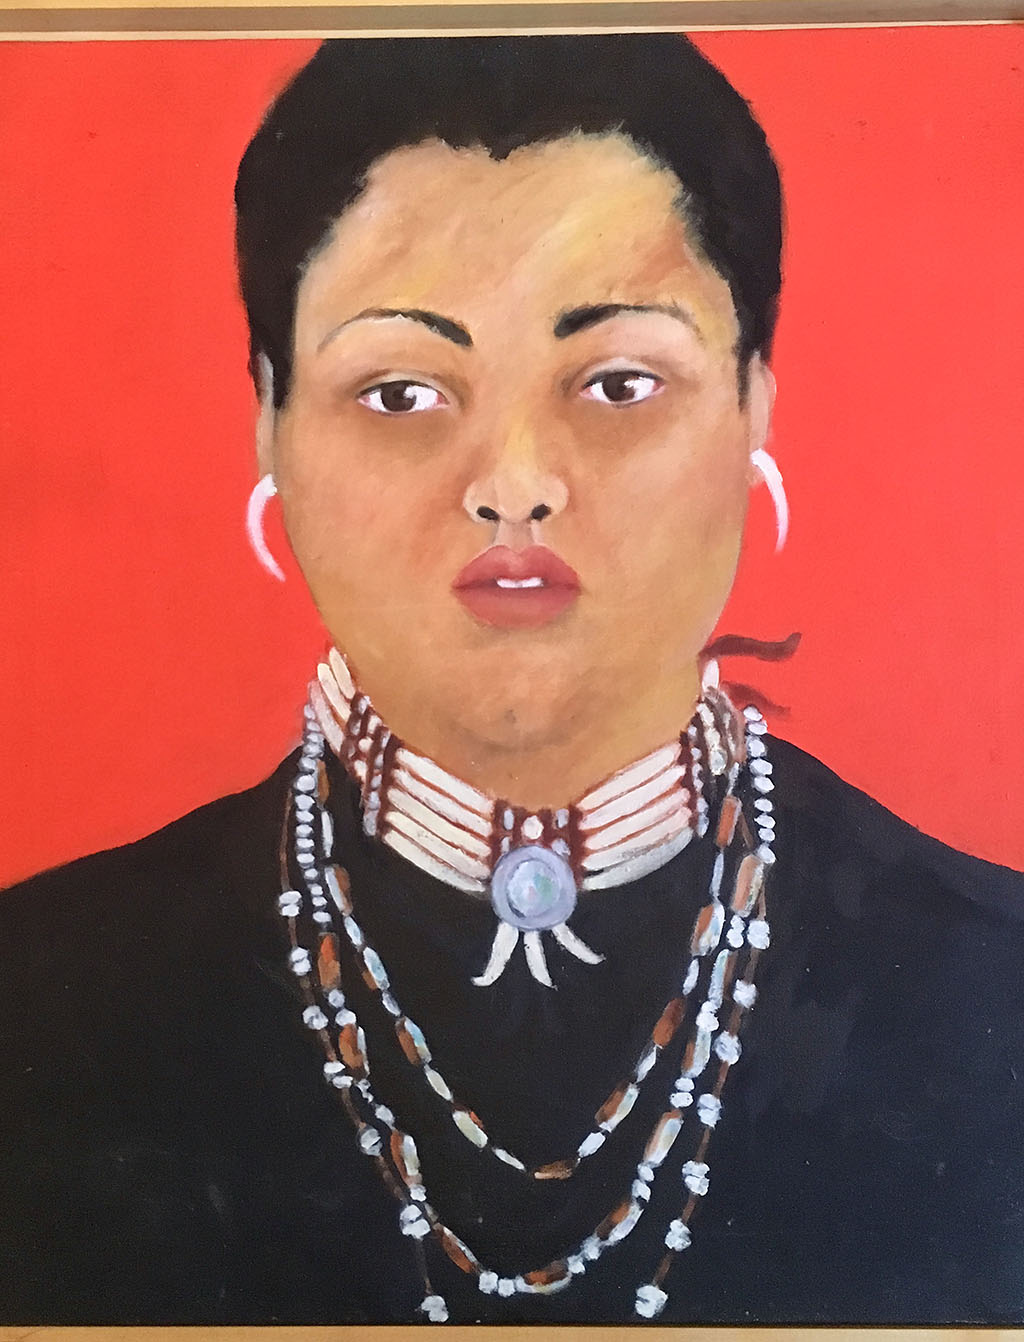 Red Me, oil paint on canvas (1998)